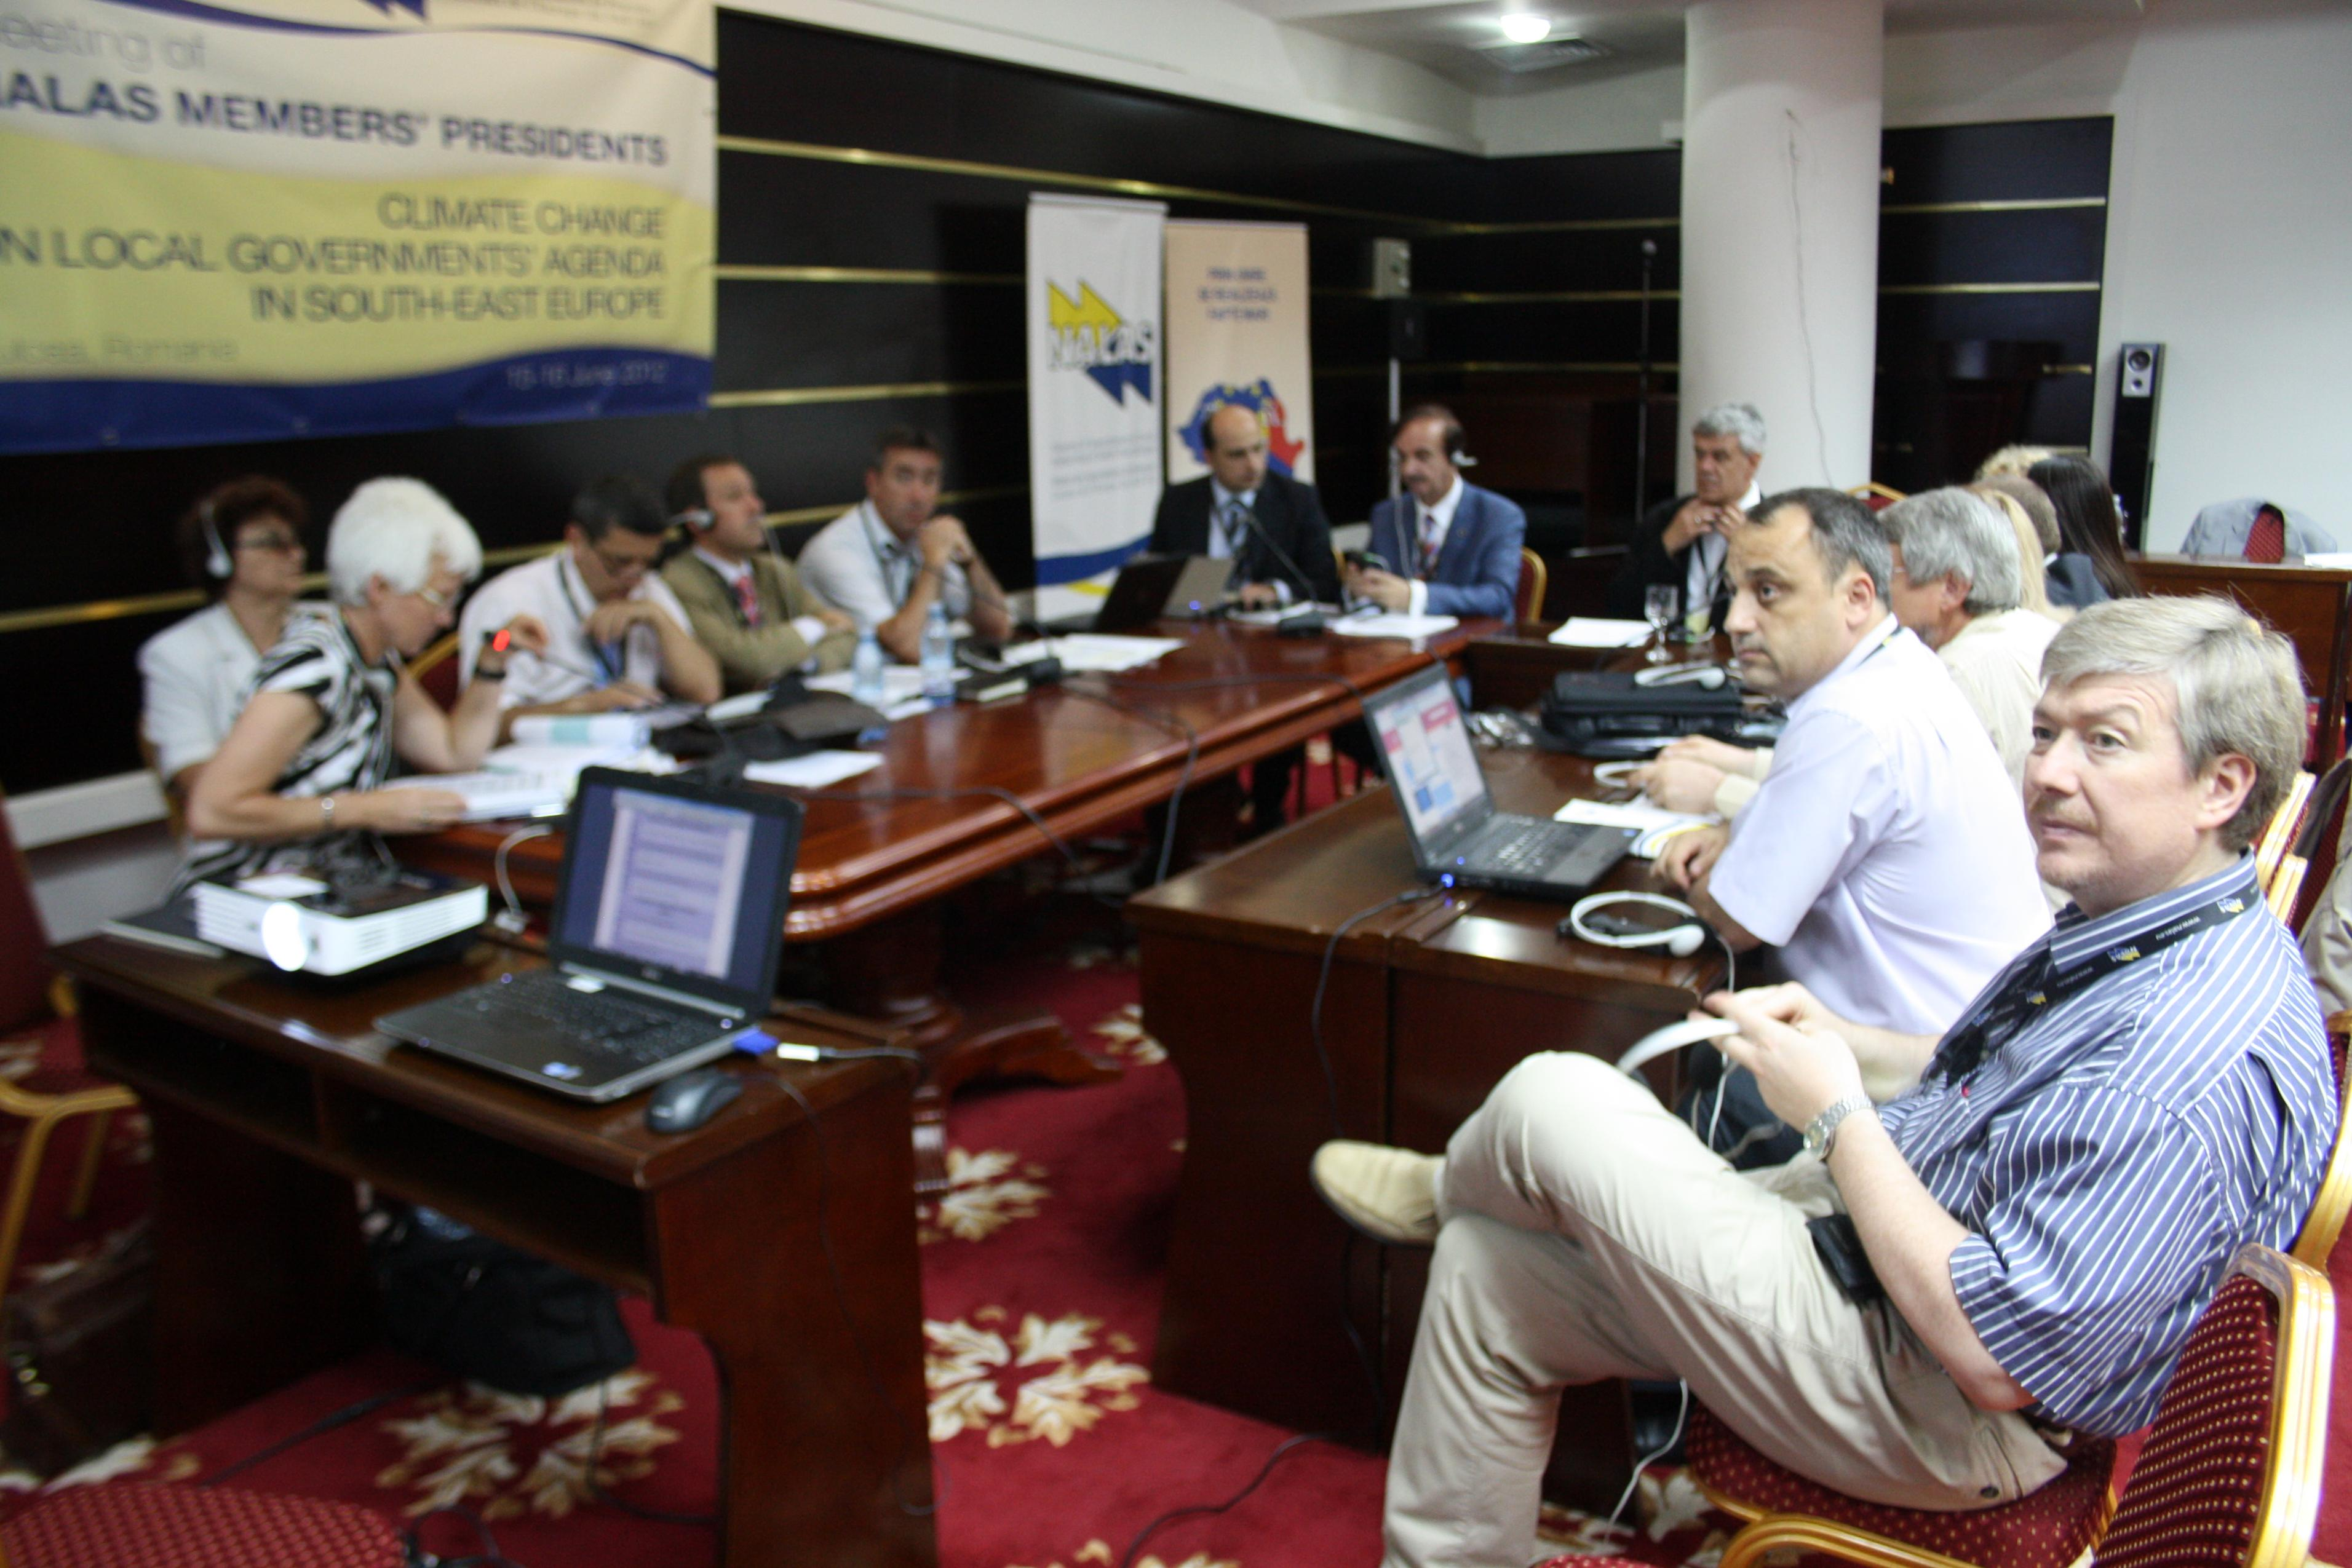 NALAS Presidents Meeting: Climate Change on Local Governments' Agenda in South-East Europe